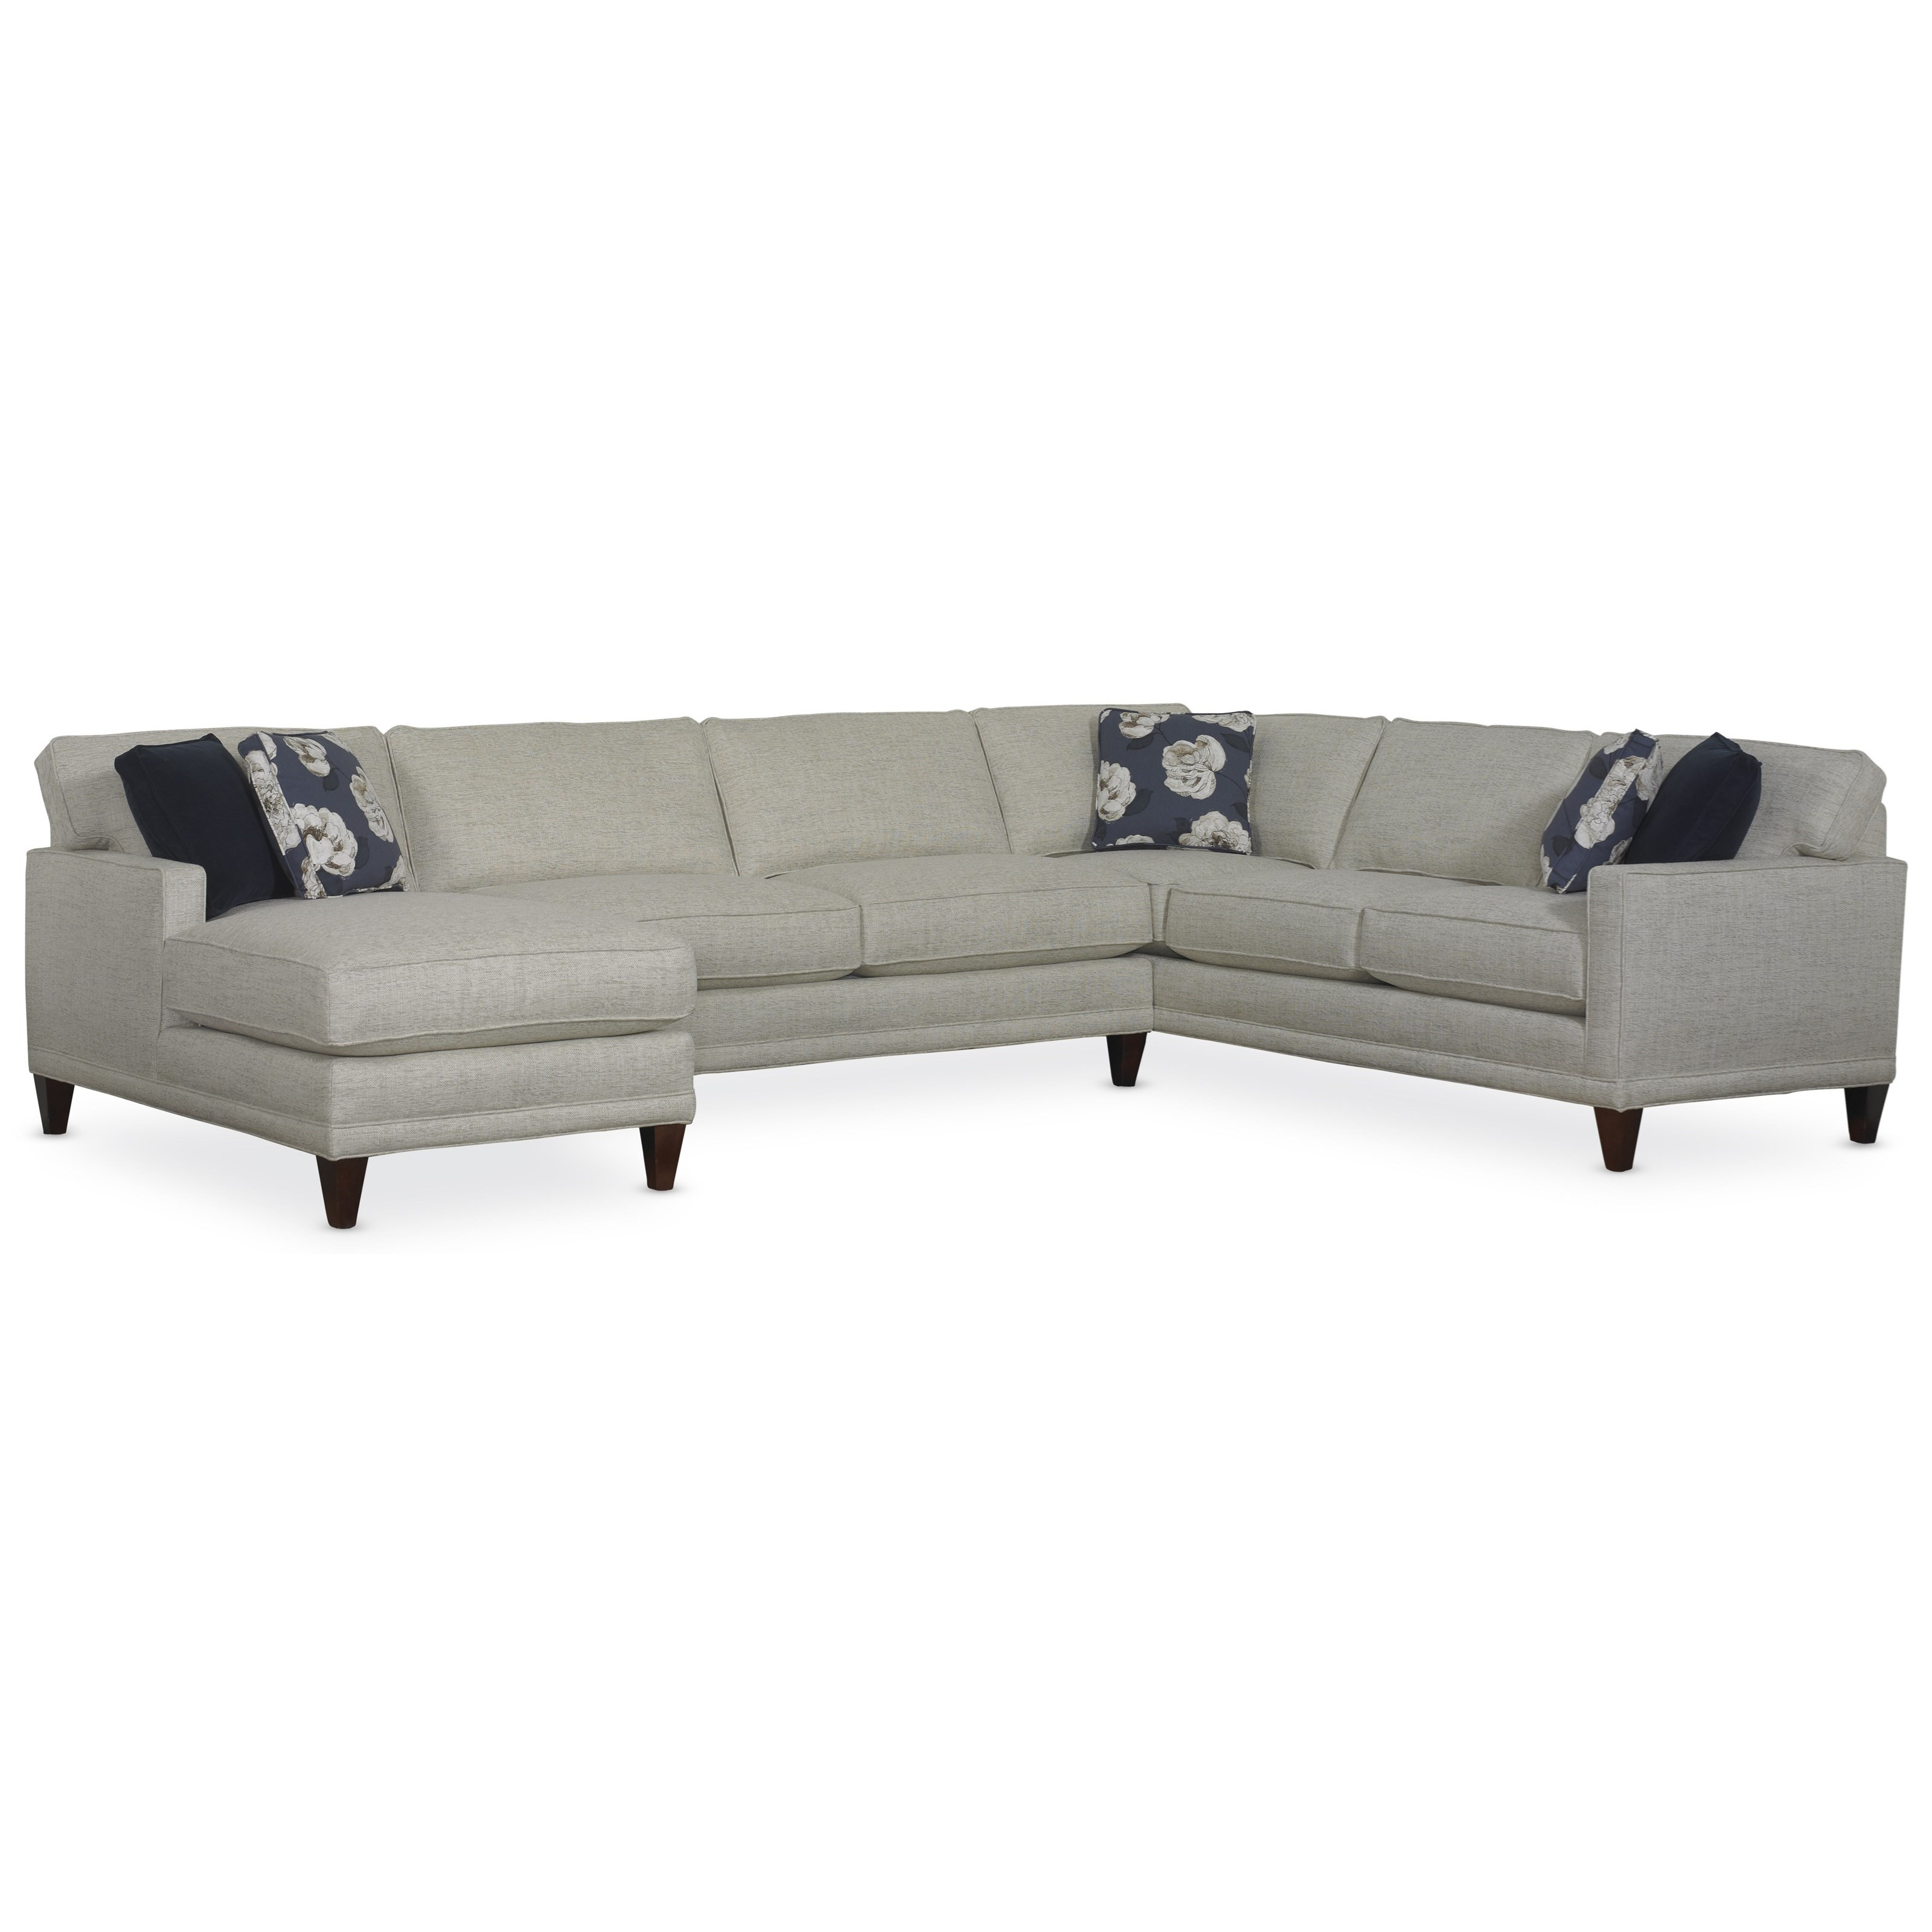 Rowe Townsend Contemporary Sofa Sectional Group Belfort